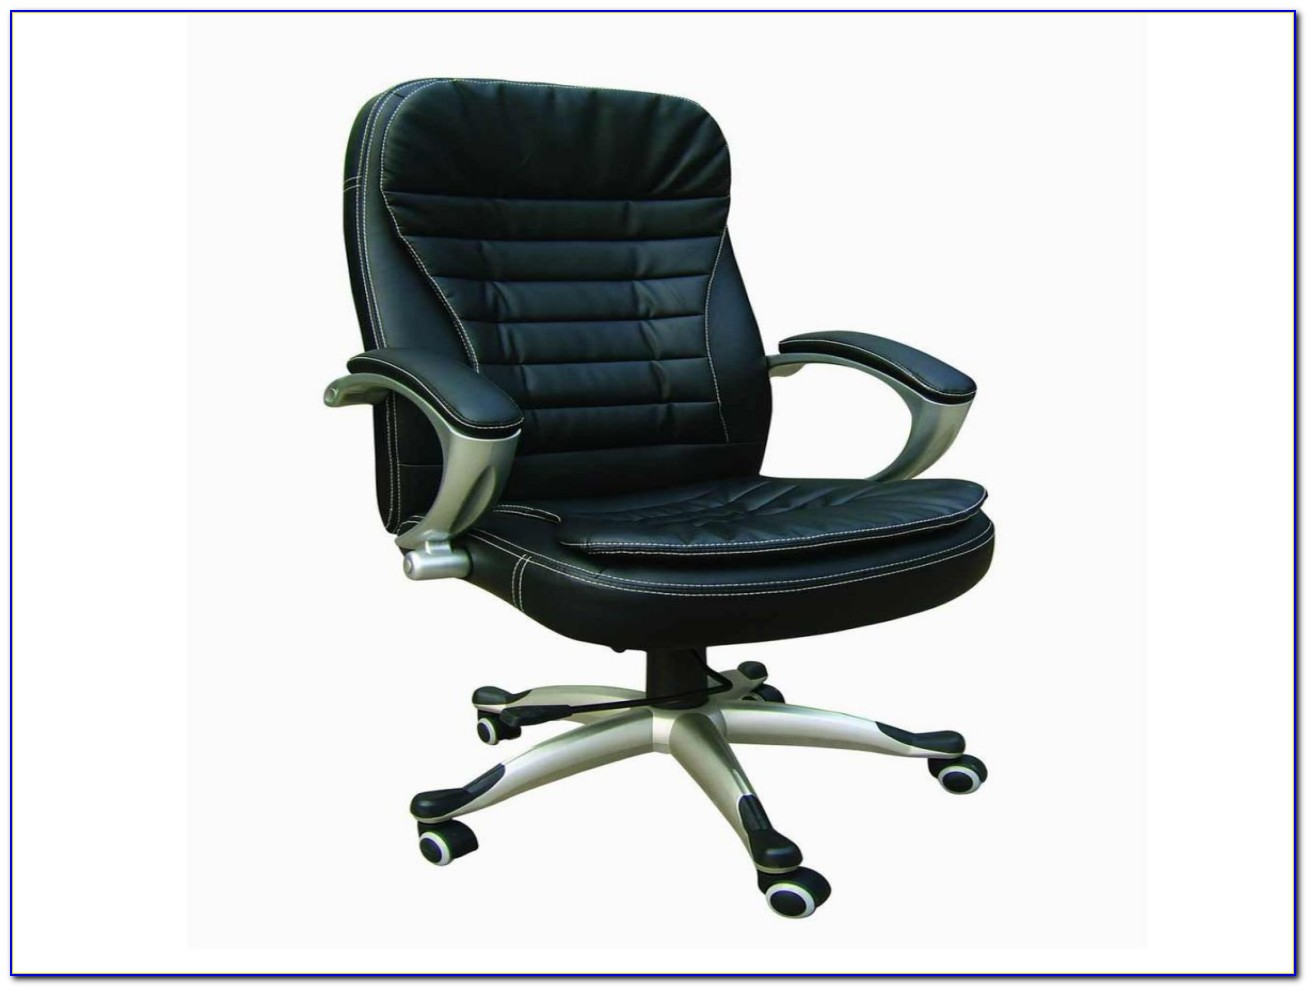 ergonomic chair singapore pillows for chairs office with lumbar support desk home